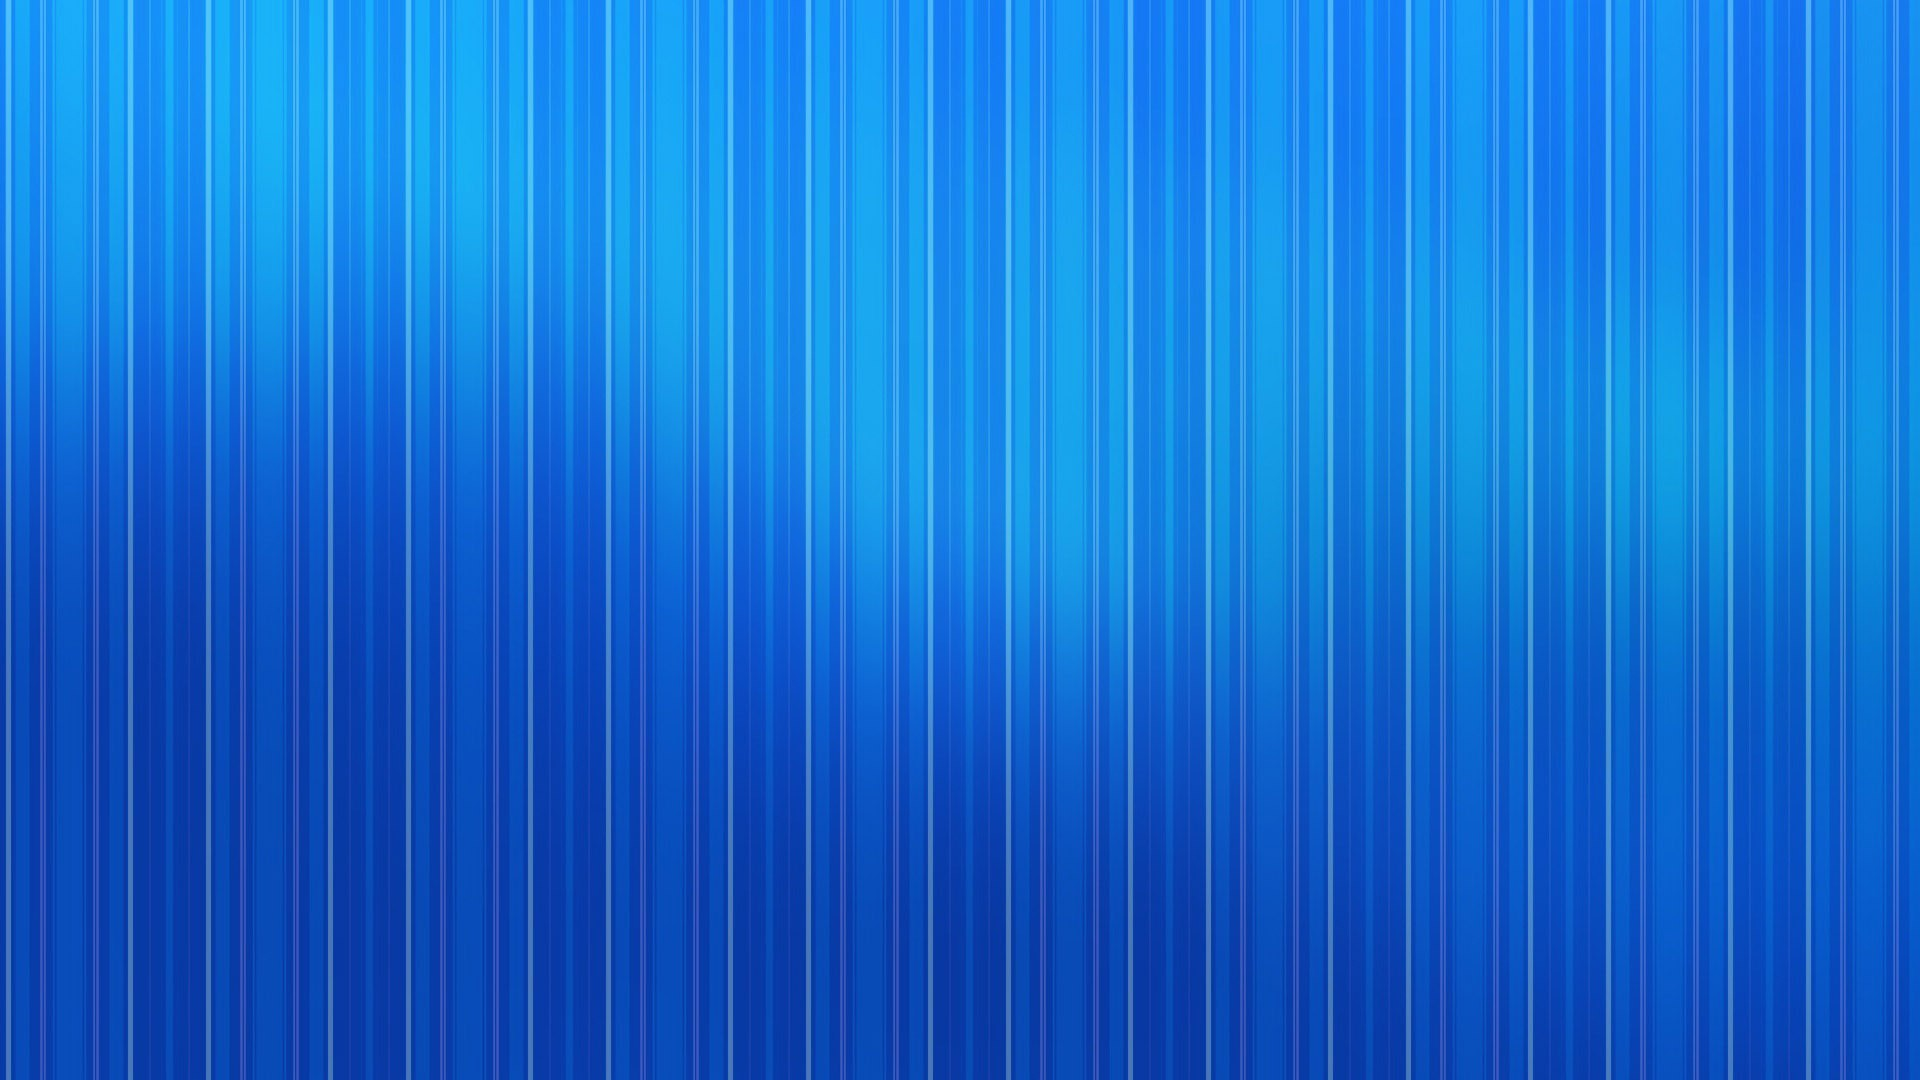 Blue Stripe Wallpaper